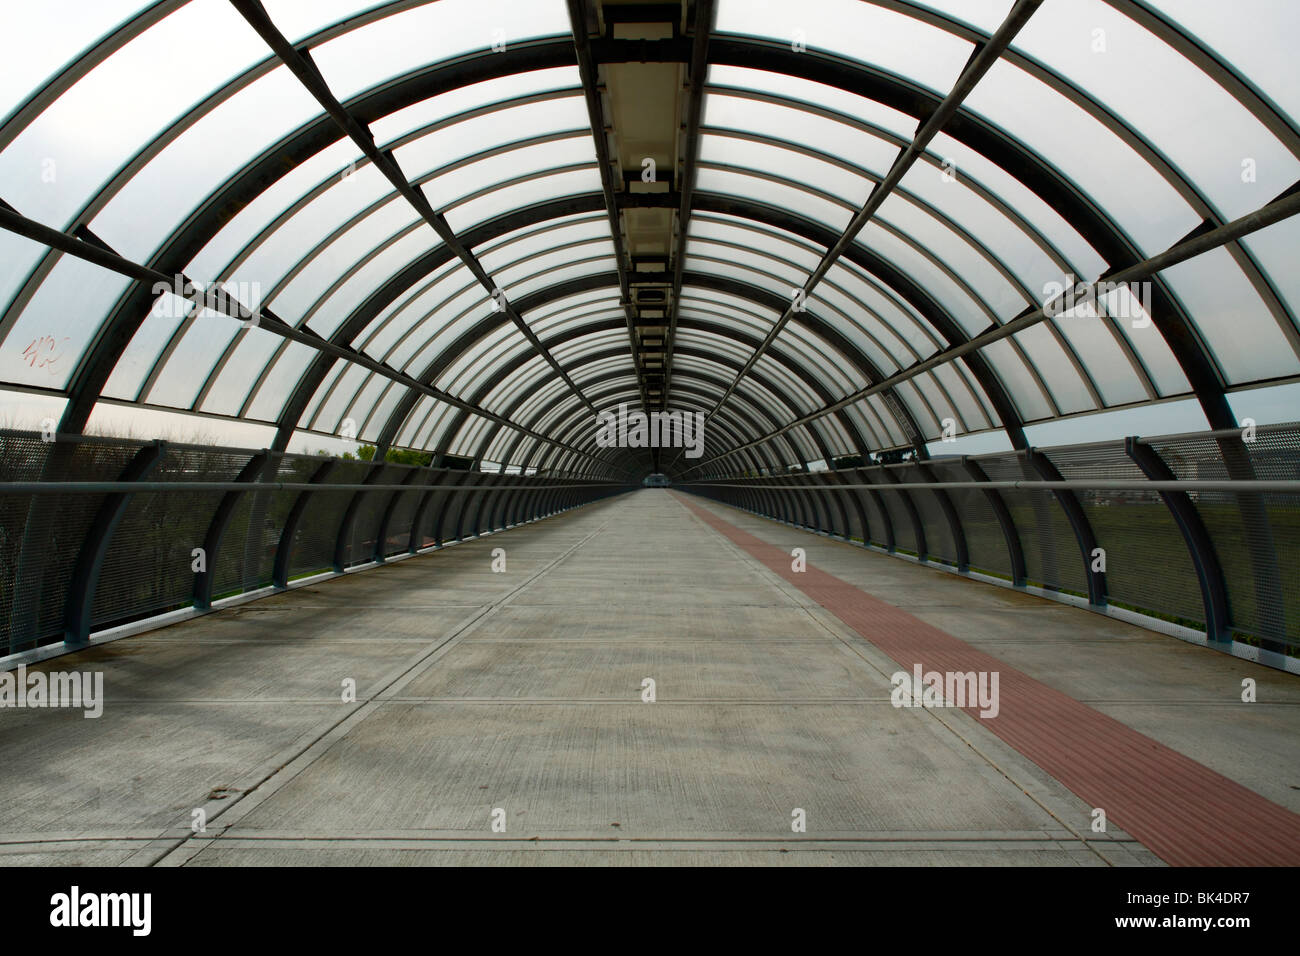 Pedestrian tunnel at nuova fiera di roma stock photo for Fiera arredamento roma